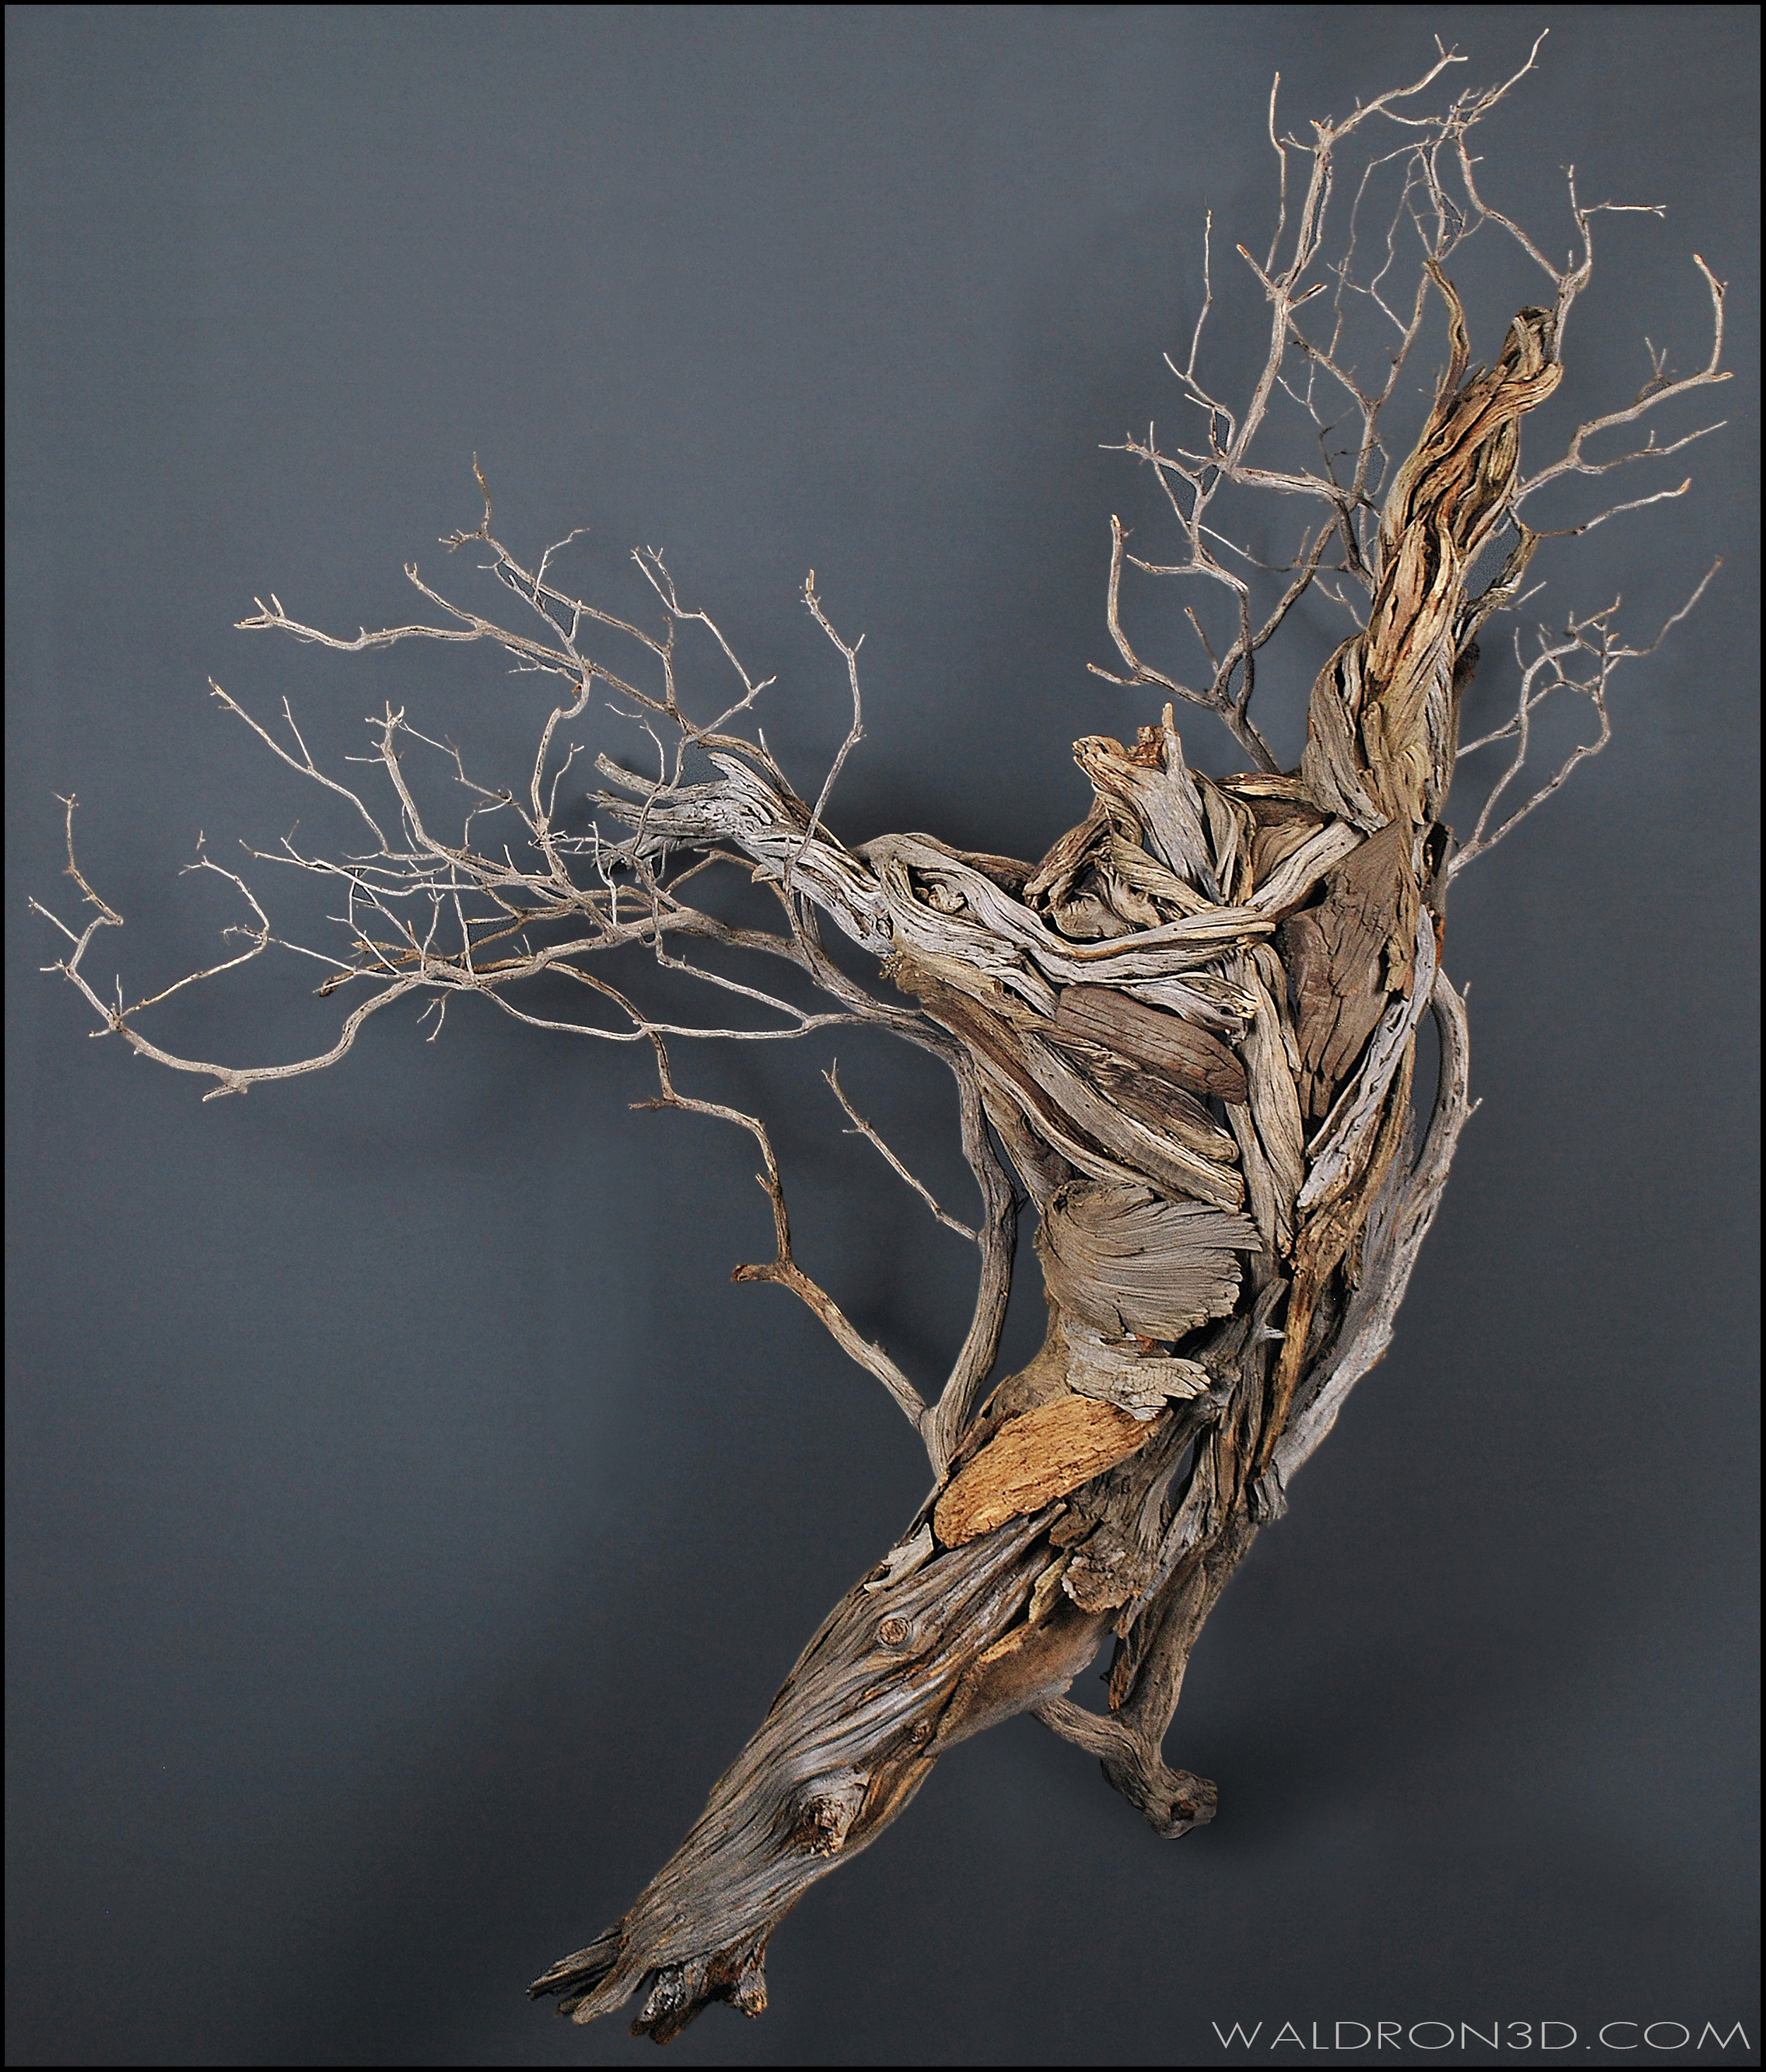 || GRACE || WALDRON 3D SCULPTURAL EXPRESSIONS - CONSTRUCTED FROM FORAGED, WEATHERED PIECES OF HIGH DESERT WOOD.